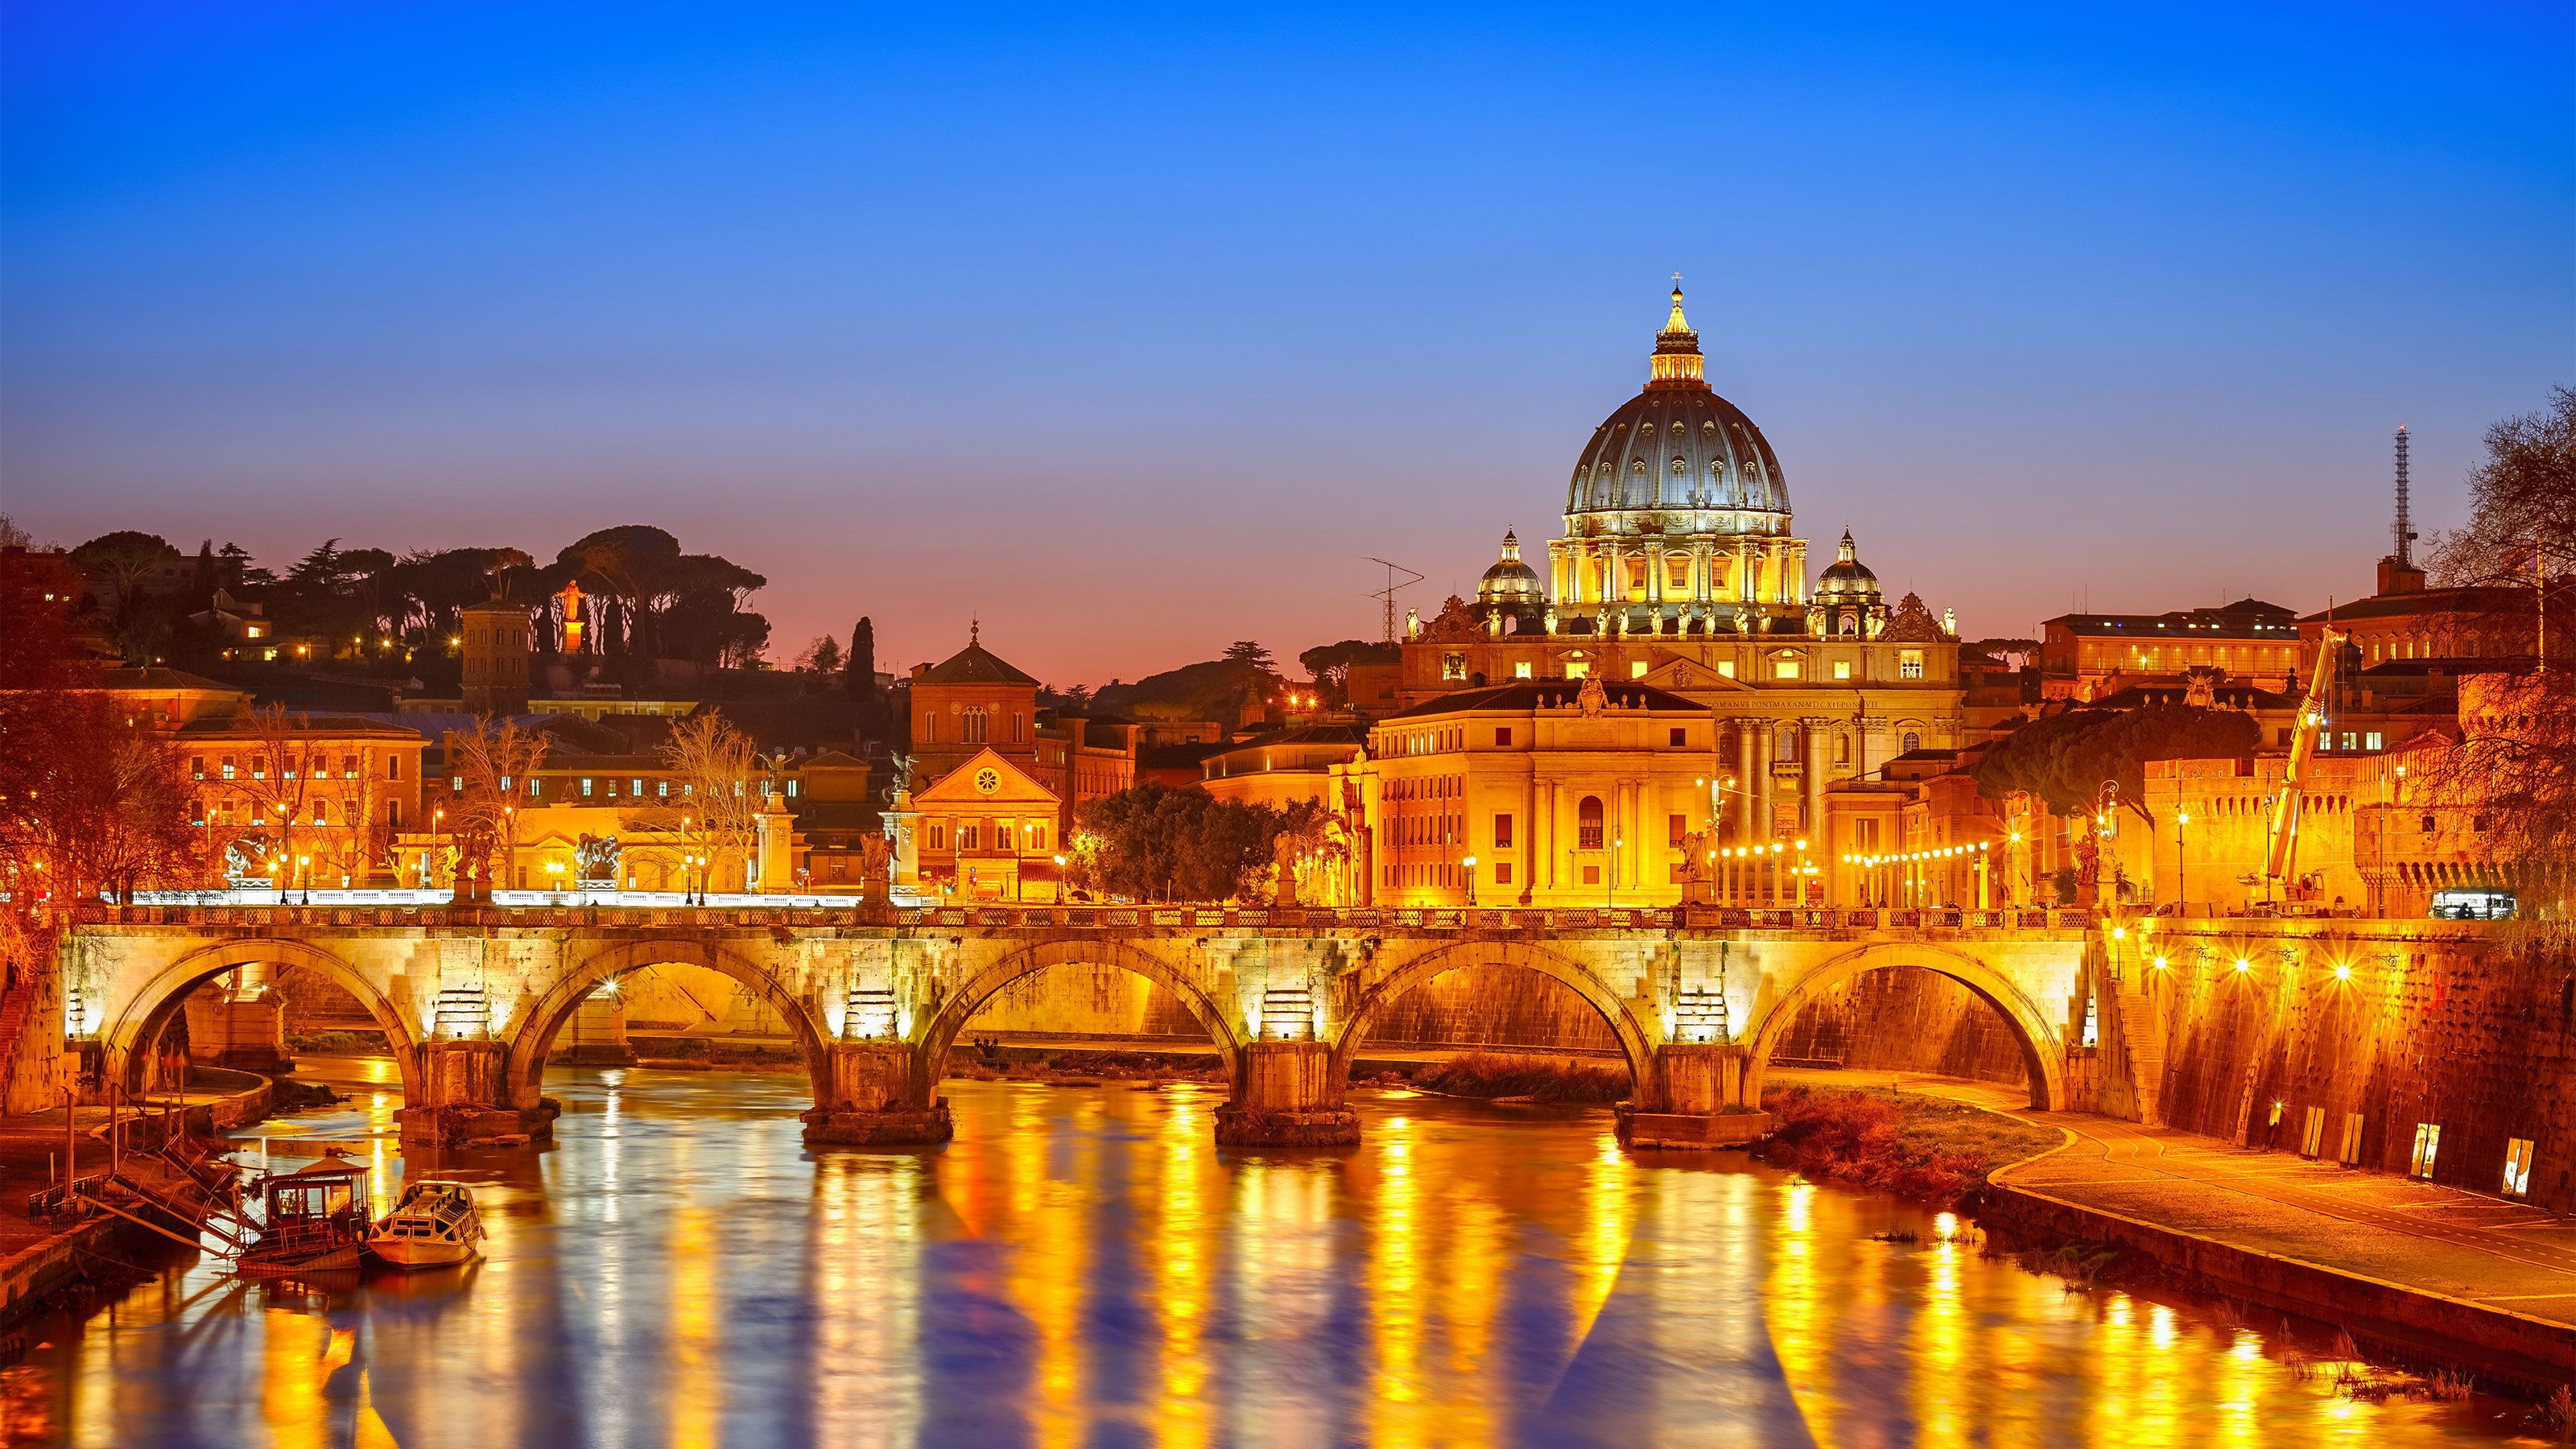 St. Peter's cathedral lit up at night in Rome